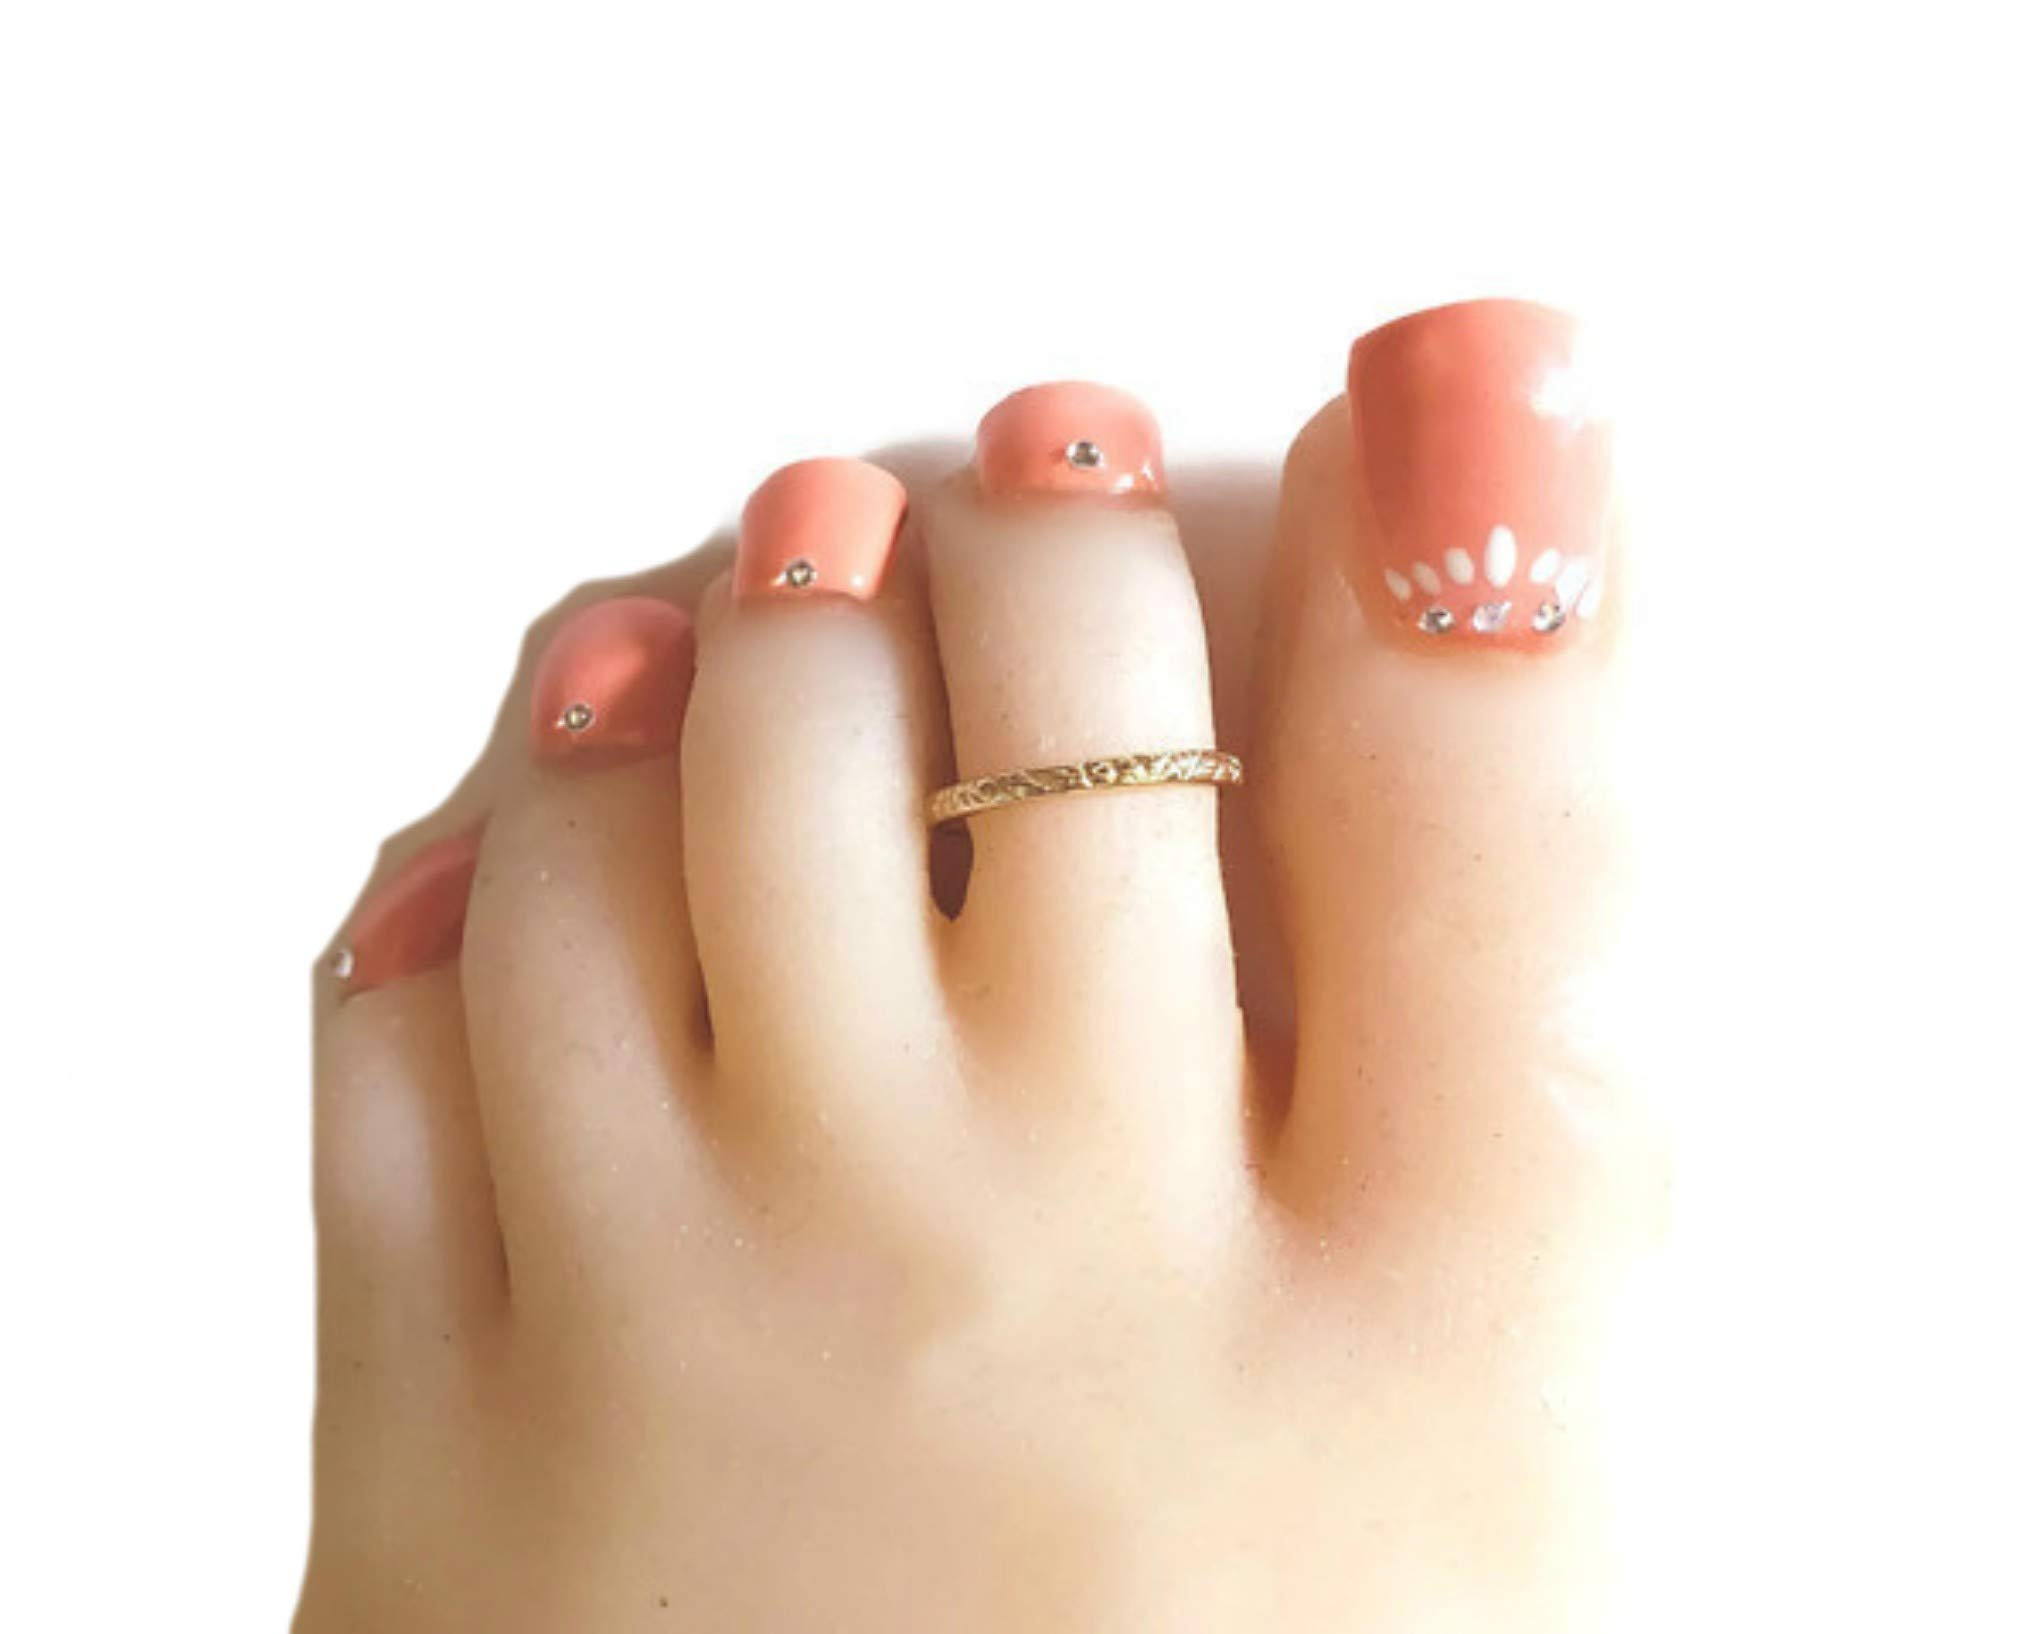 California Toe Rings 14k Gold Filled Hawaiian Adjustable Toe Ring One Size Fits All Most by California Toe Rings